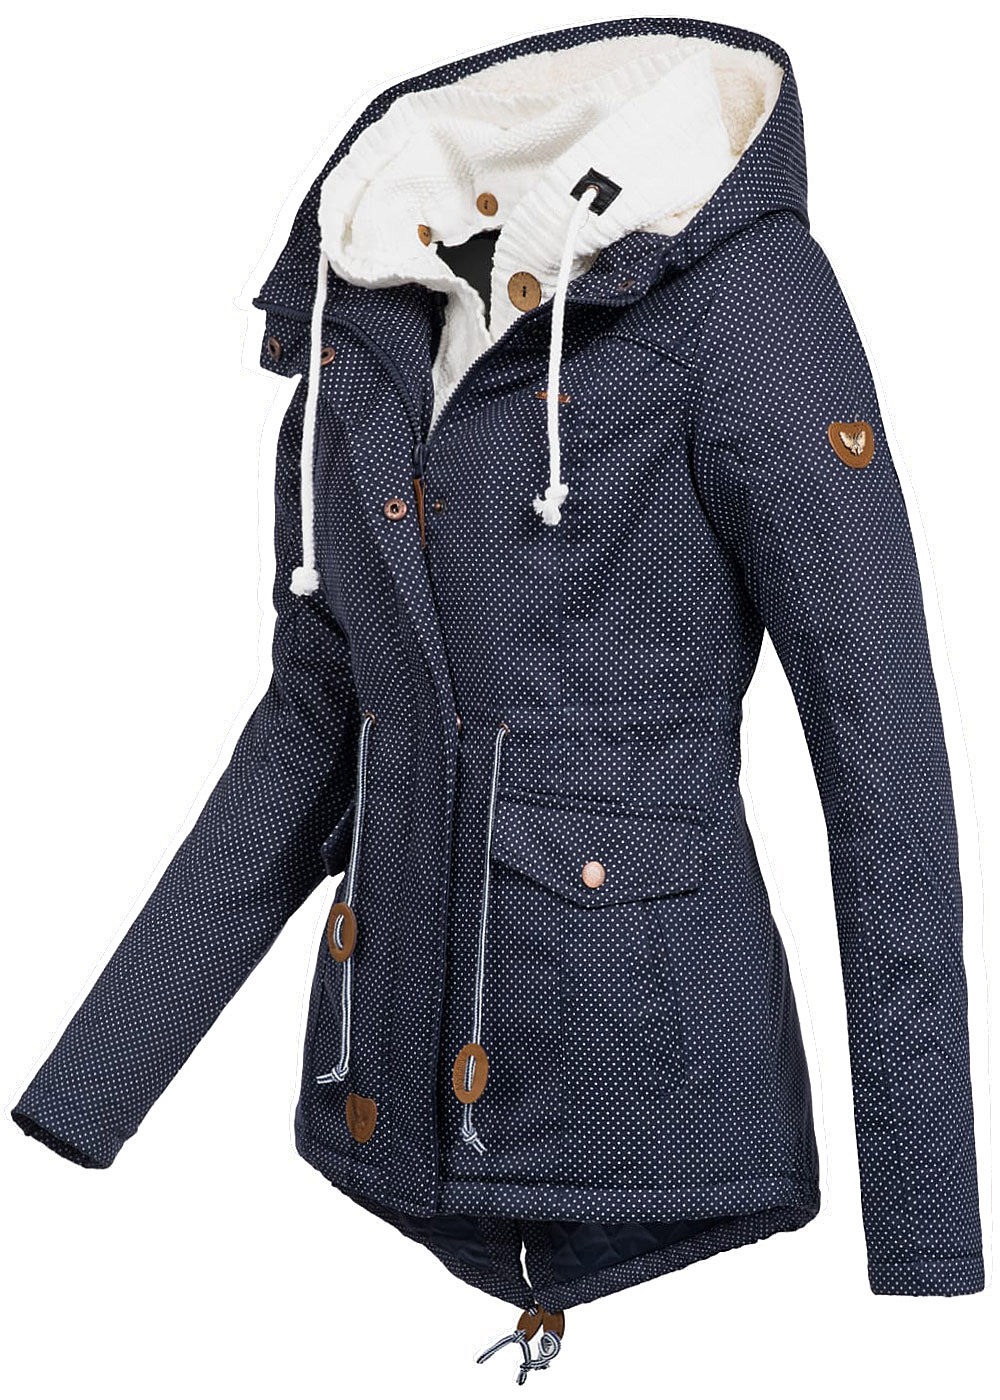 seventyseven lifestyle damen winter parka abn strickeinsatz punkte muster navy blau weiss. Black Bedroom Furniture Sets. Home Design Ideas